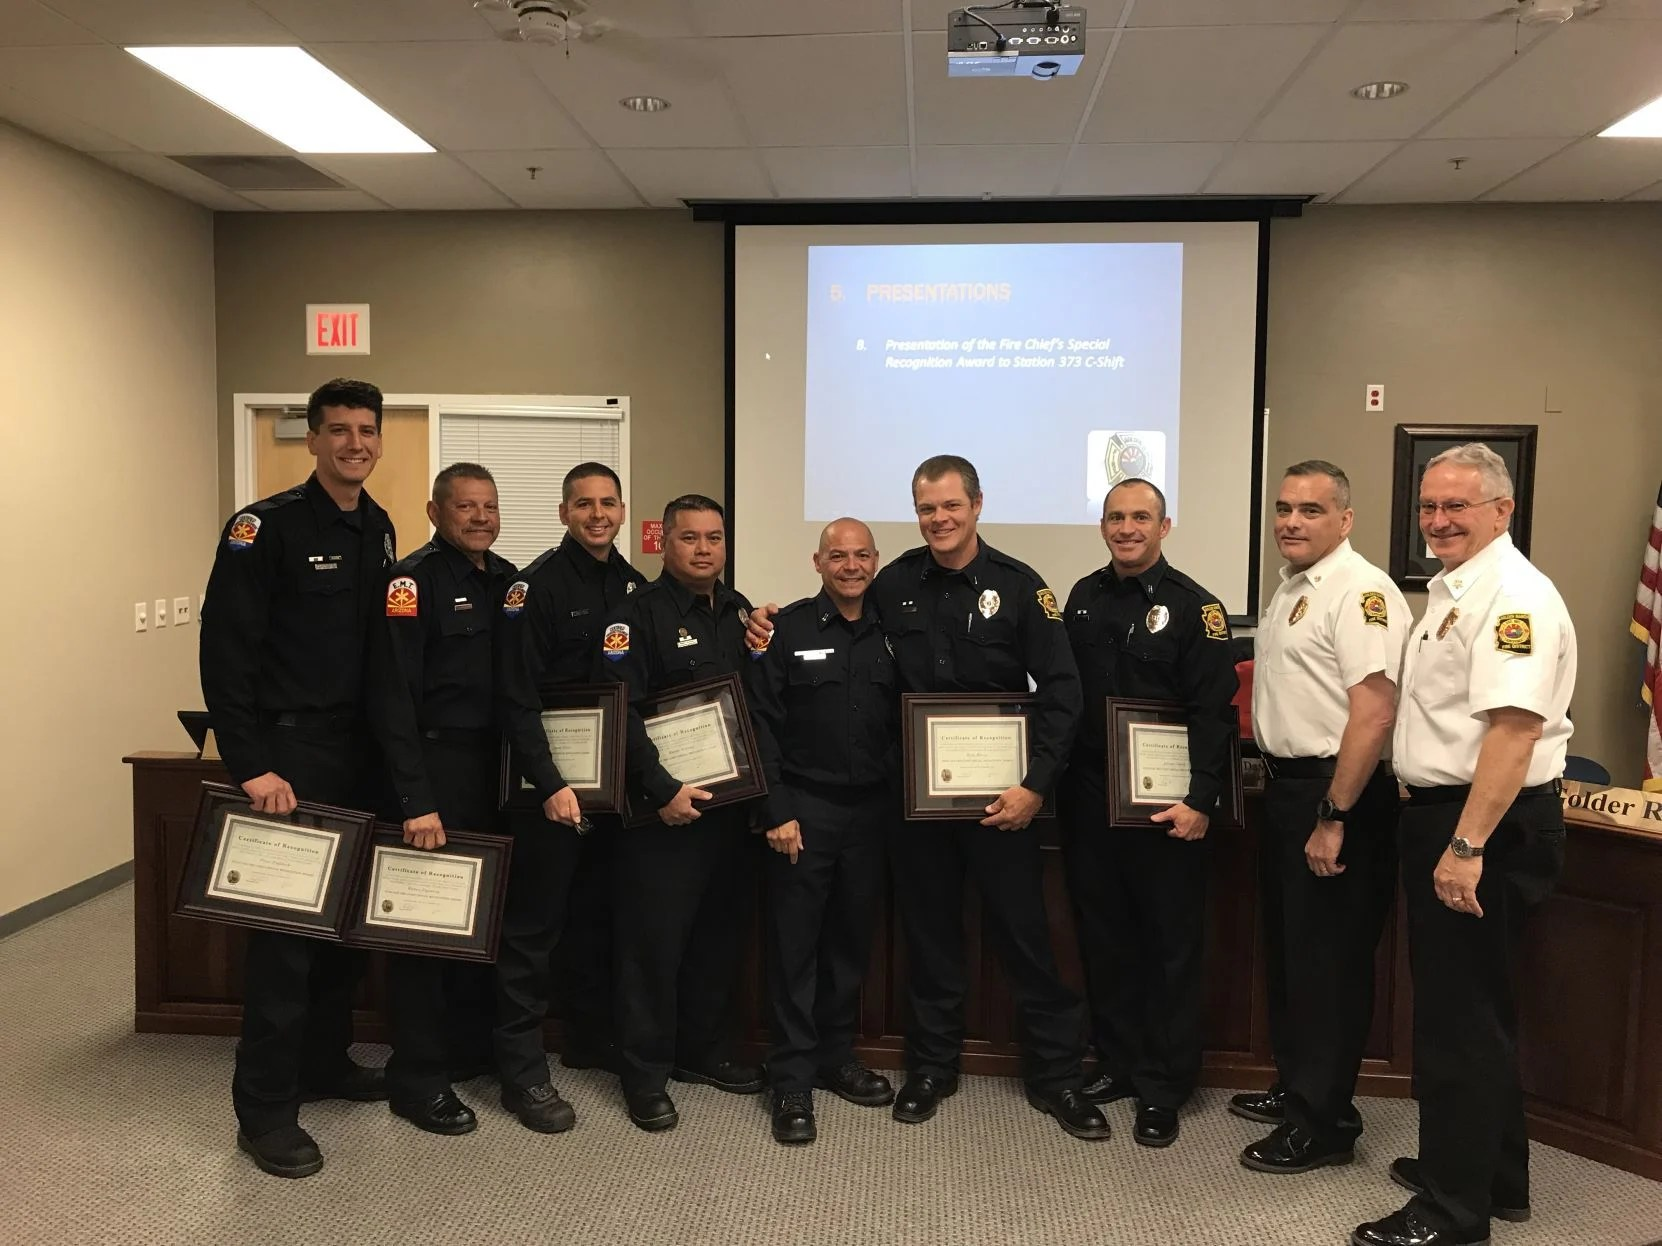 Fire Captain Cover Letter Golder Ranch Fire Crew Springs Into Action To Save The Life Of A